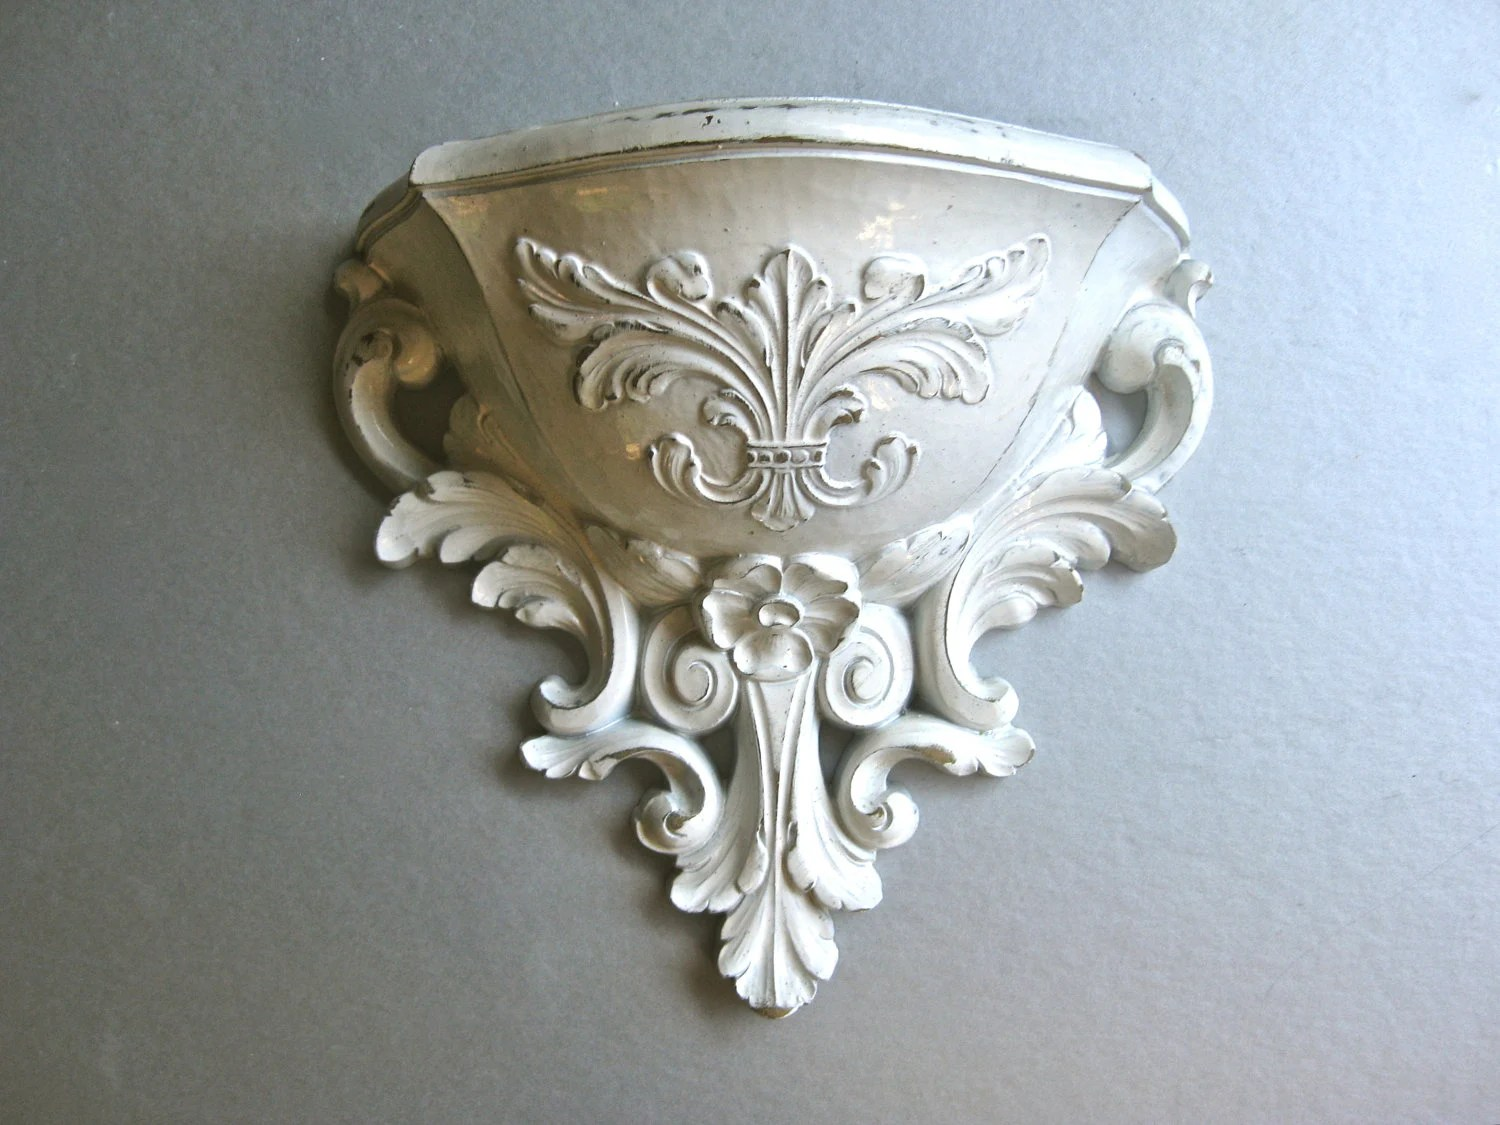 Vintage Wall Pocket Wall Sconce Planter Shabby Chic by Swede13